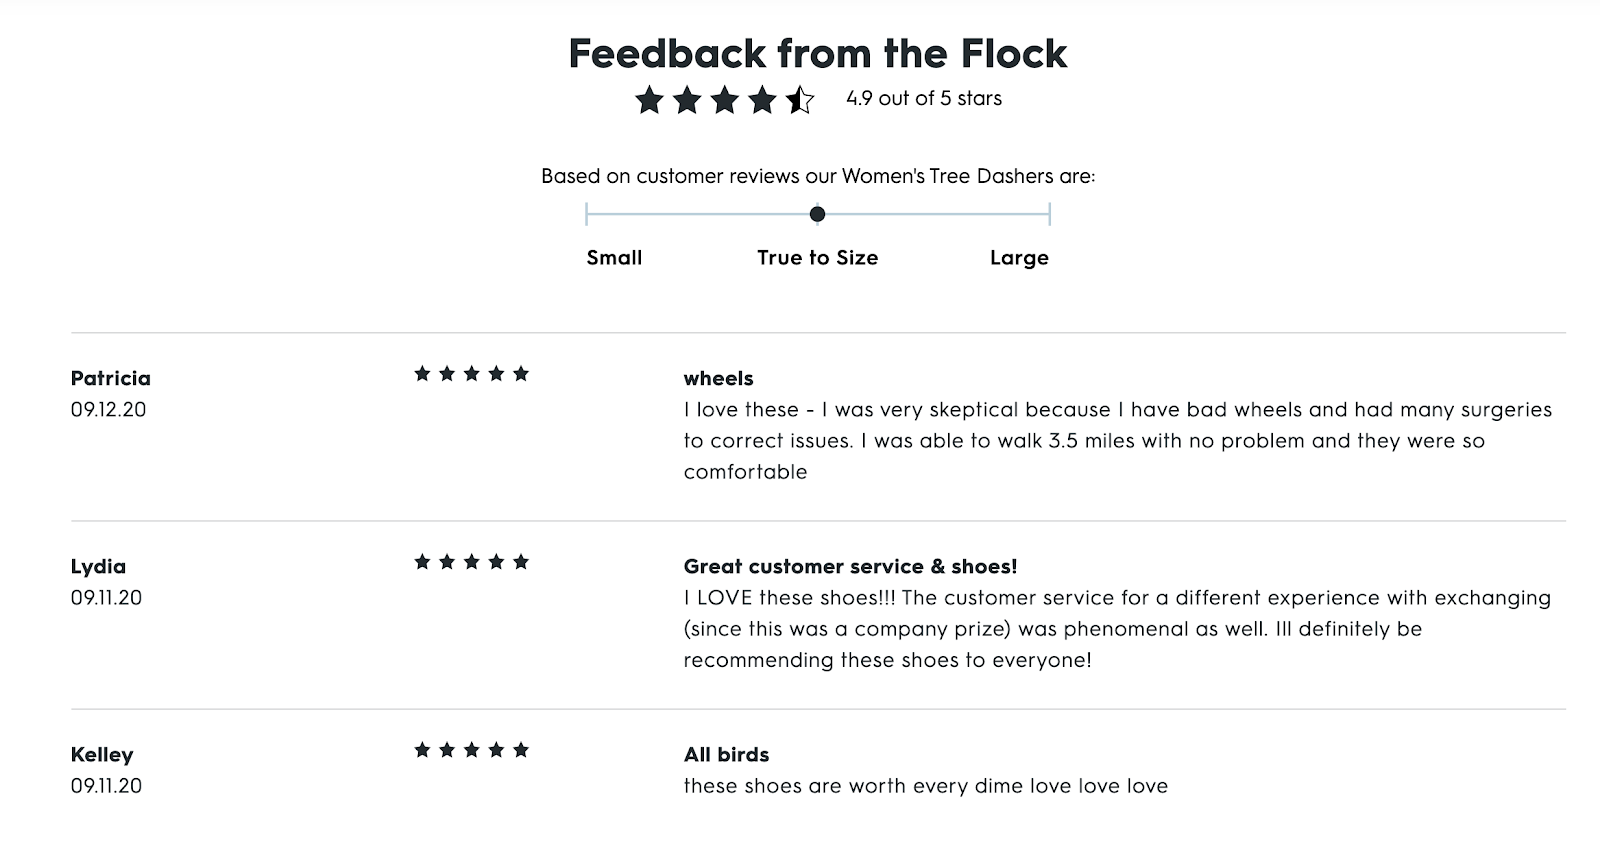 Product Review Placement on an eCommerce Website (Allbirds Example)